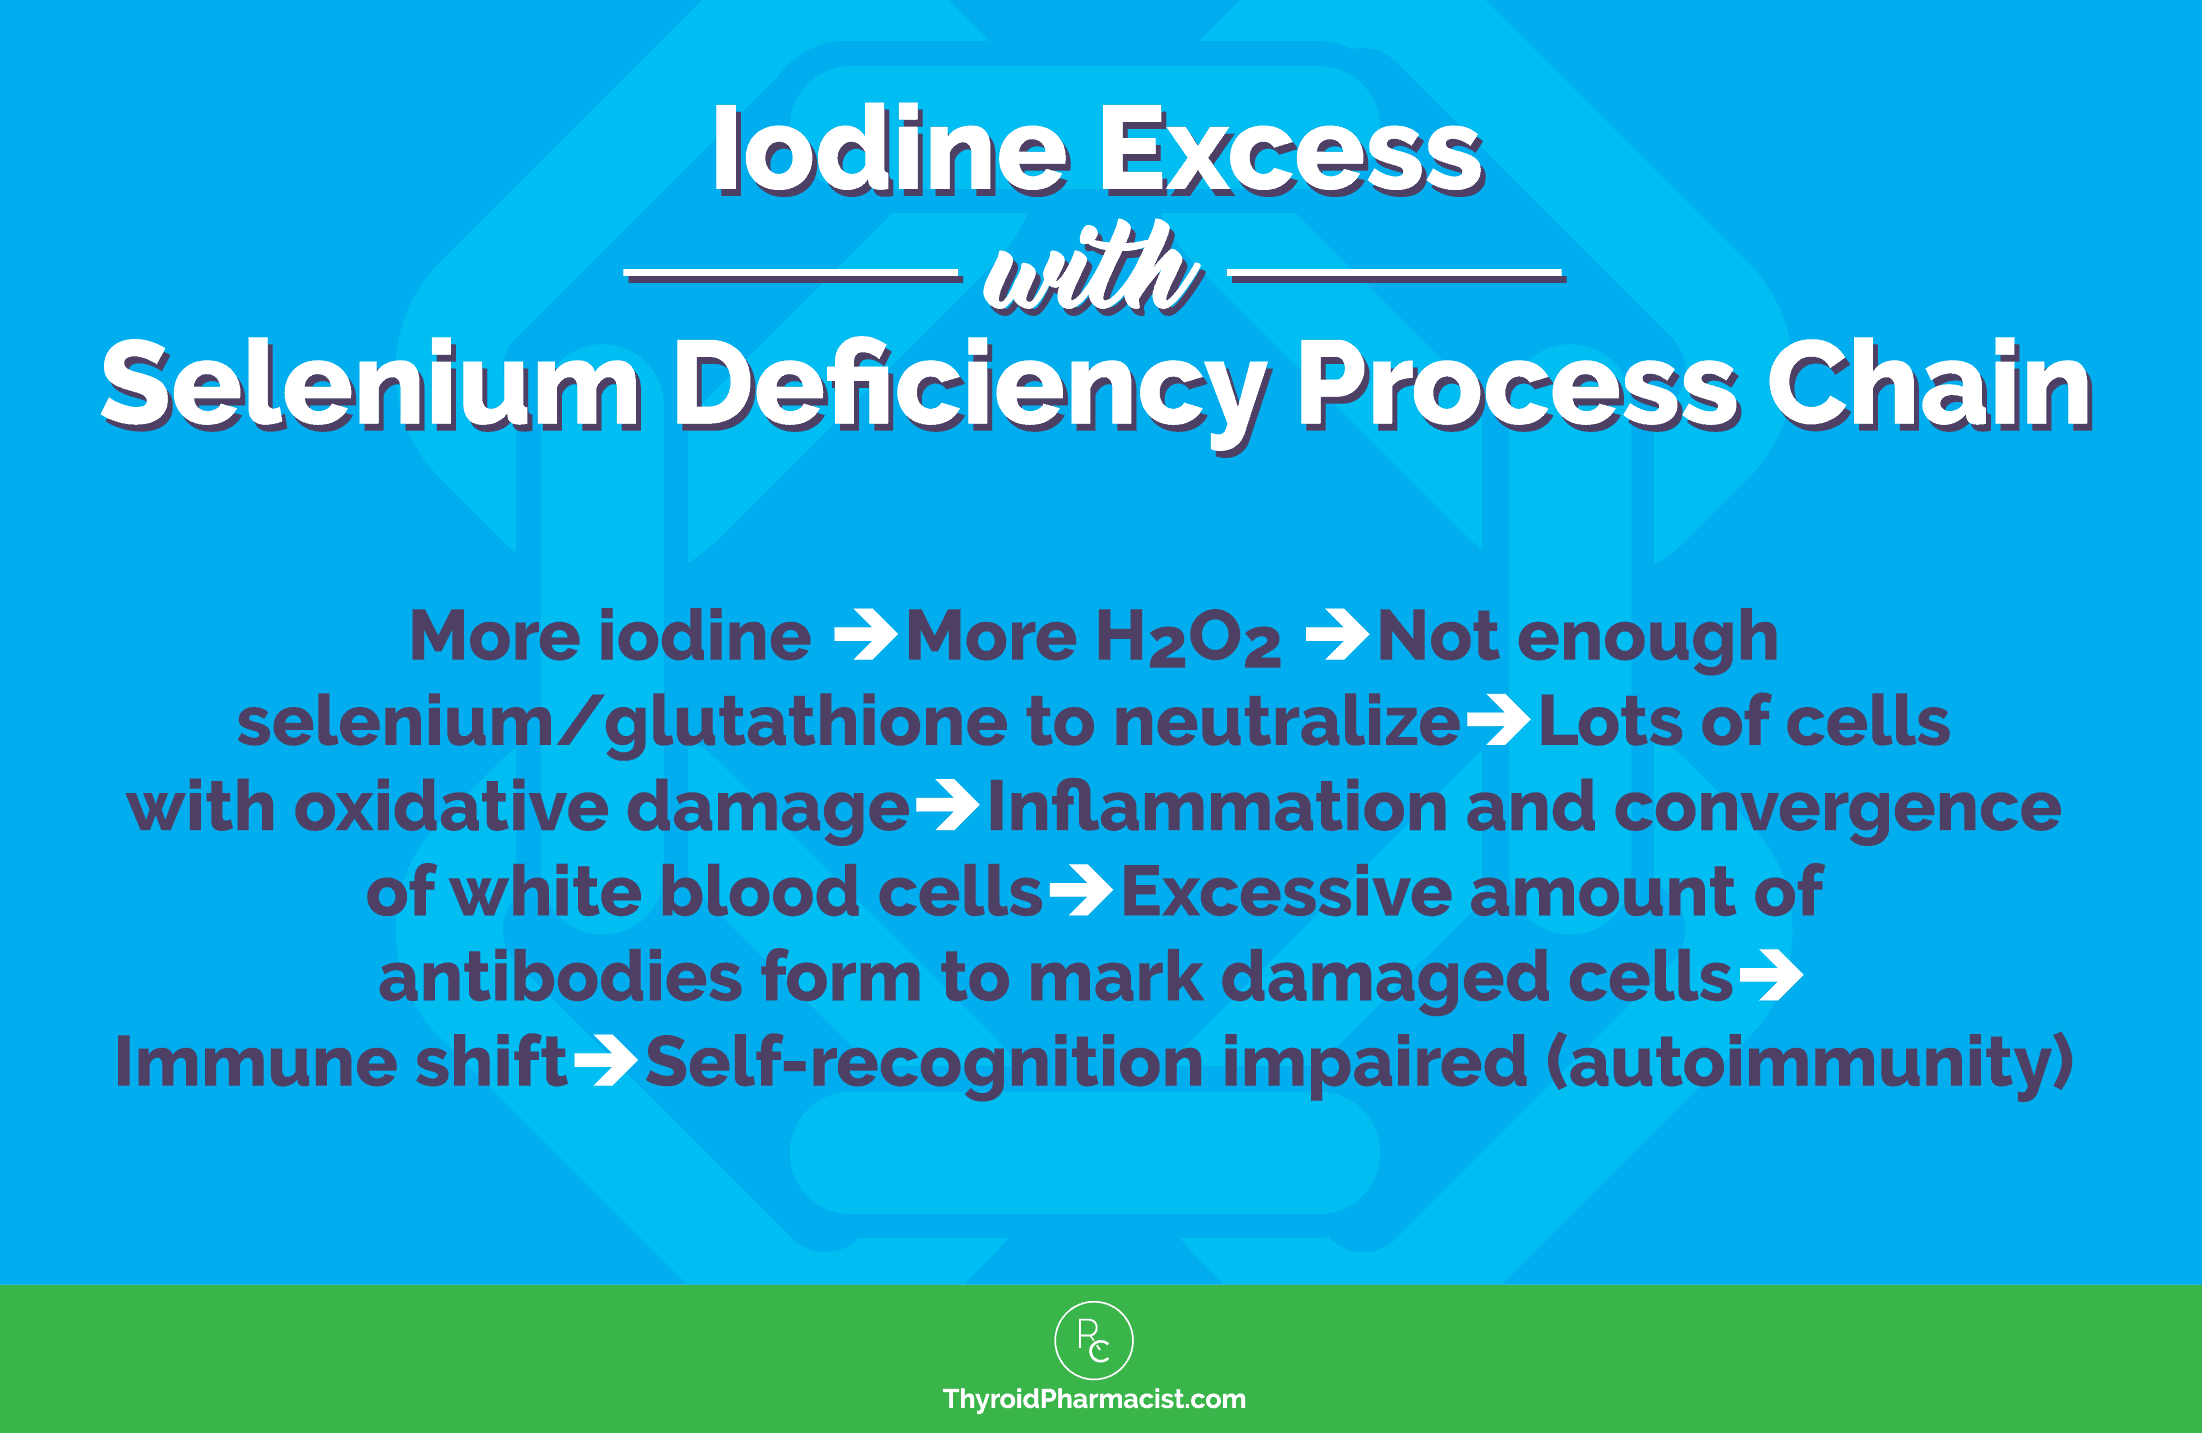 Iodine Excess with Selenium